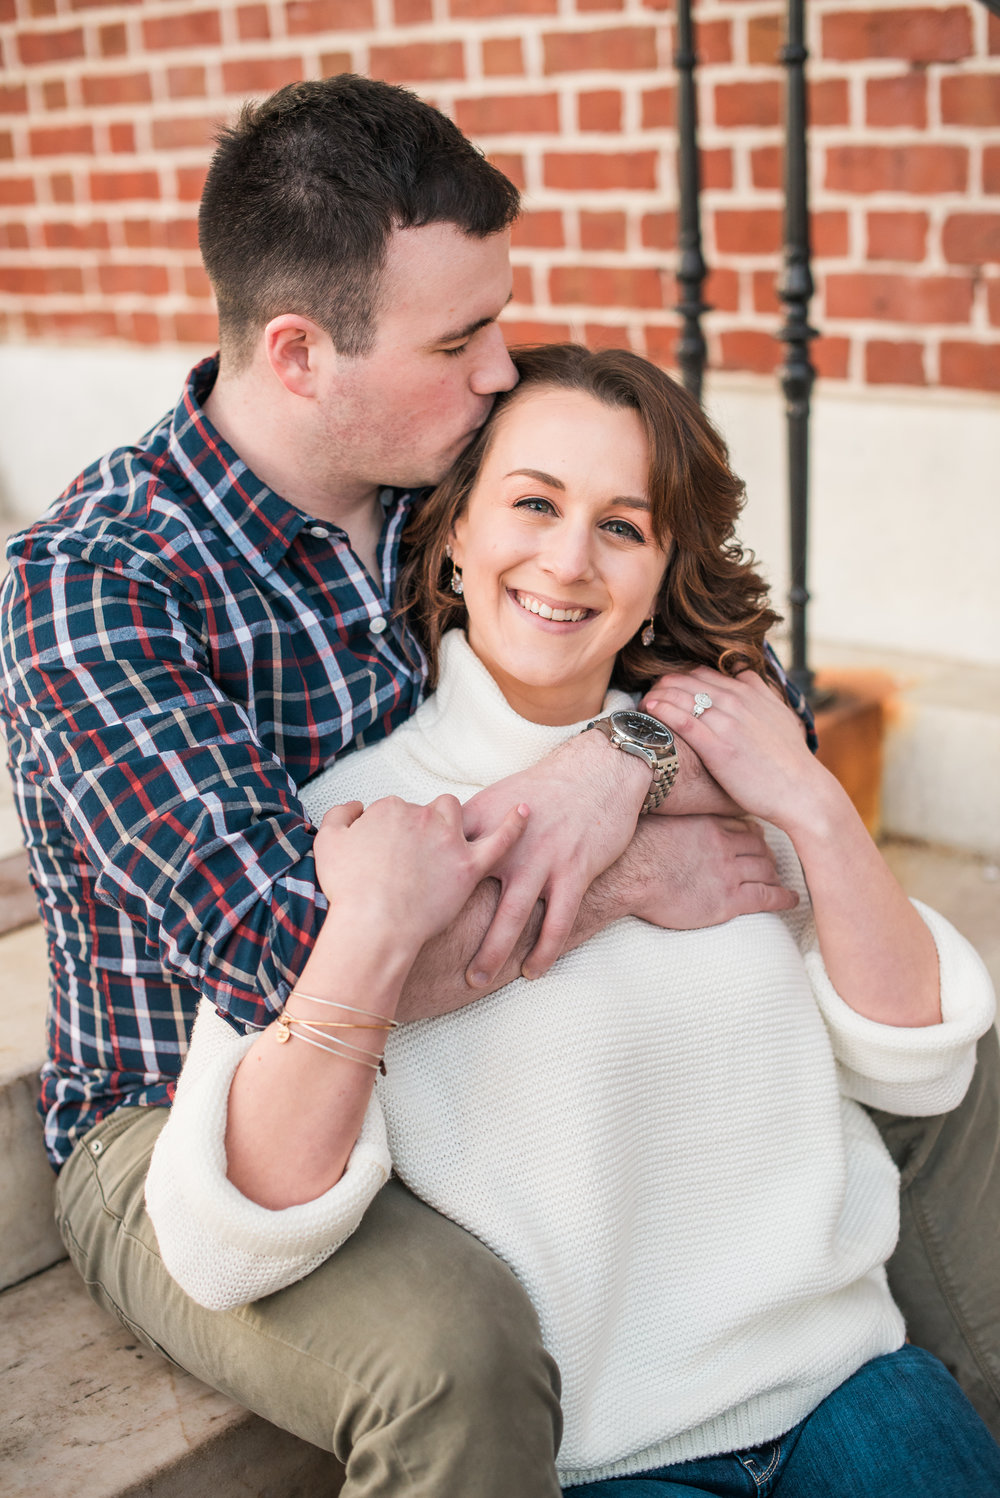 downtown-annapolis-engagement-session-chelsea-blanch-photography-12